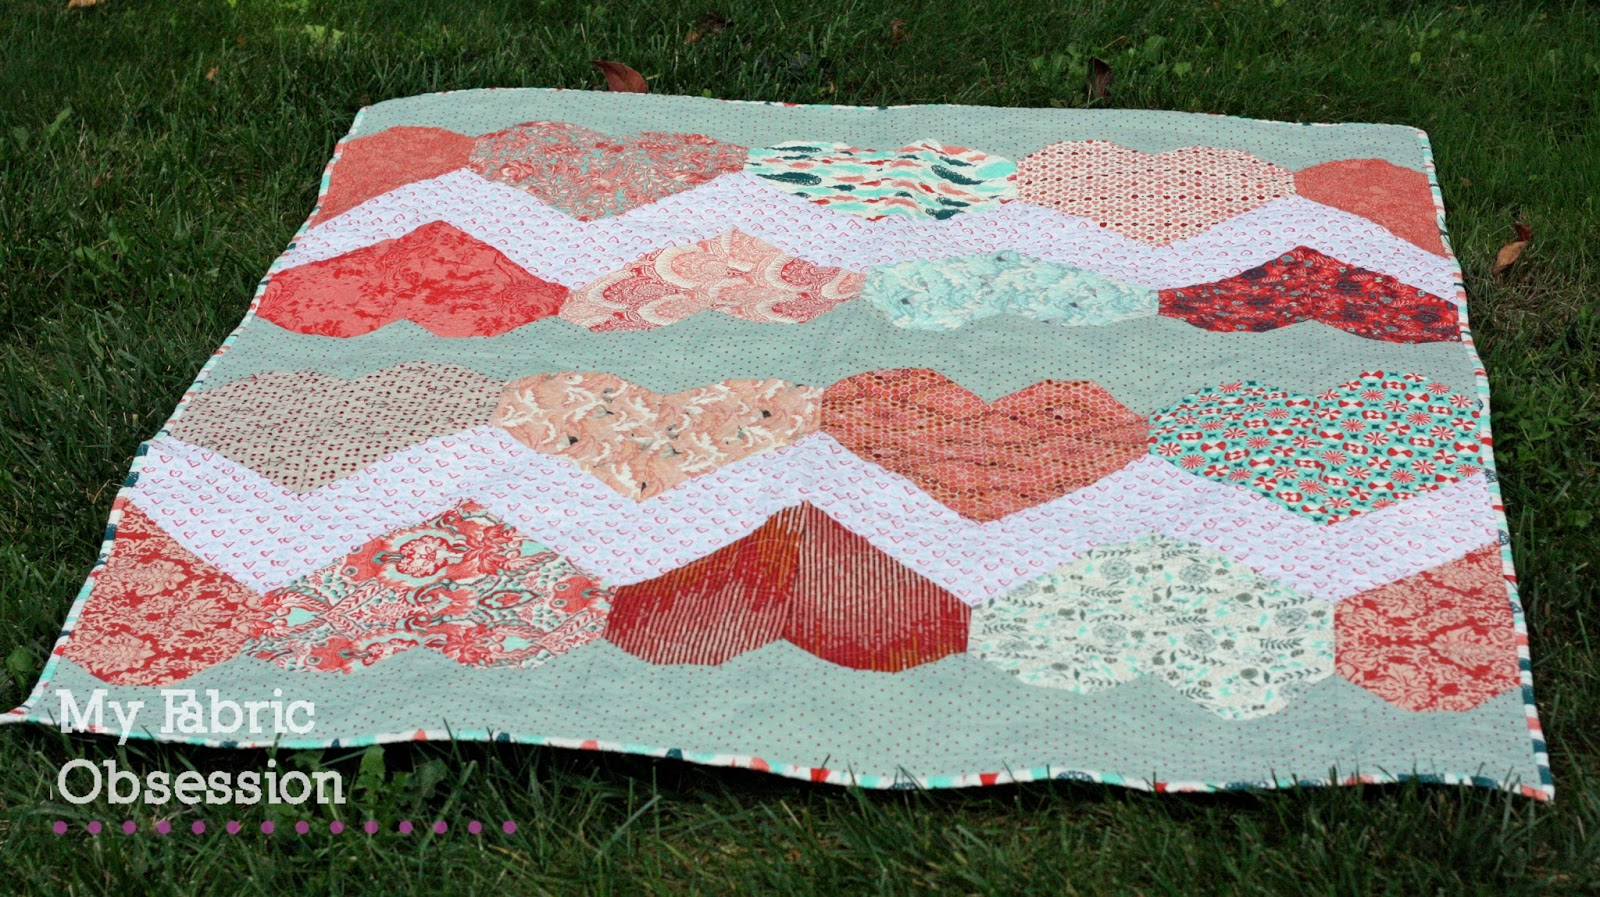 My Fabric Obsession: A Heart Quilt